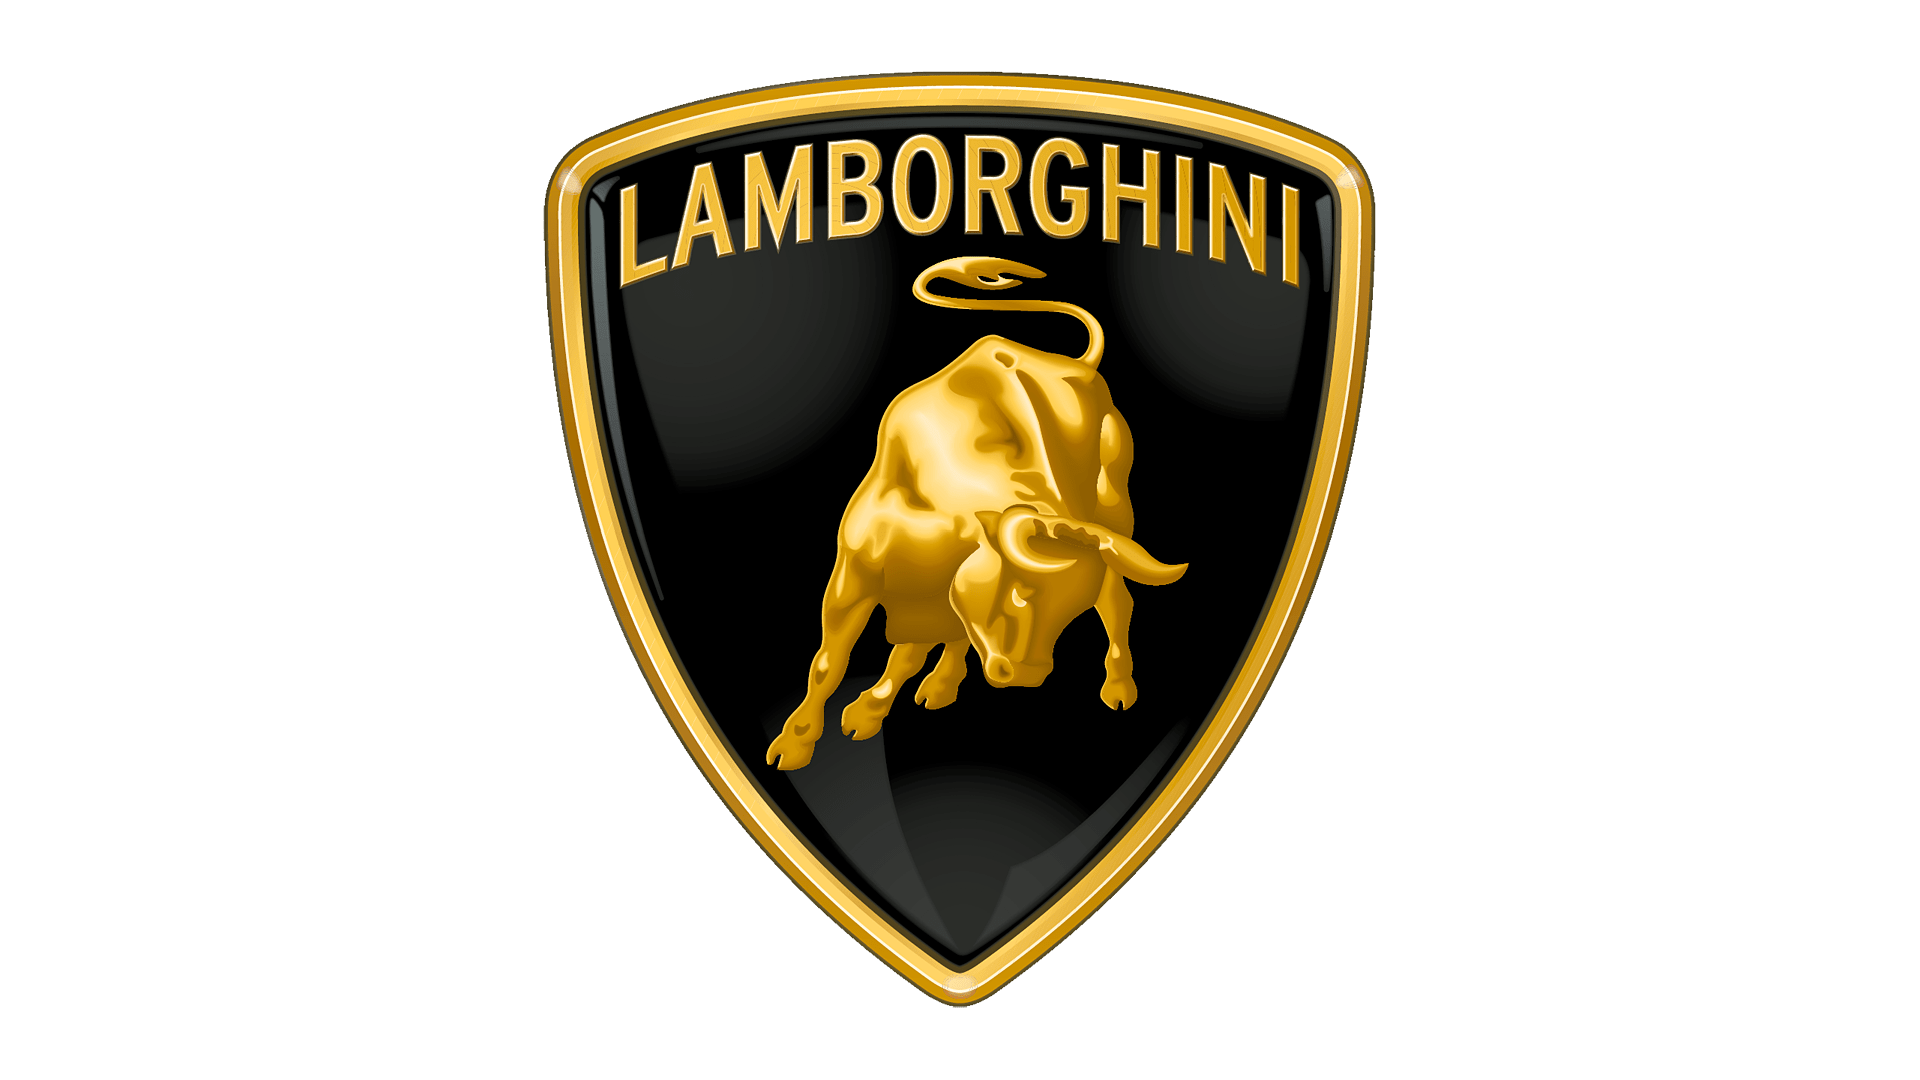 Lamborghini recalls vehicles with defective weight limit labels